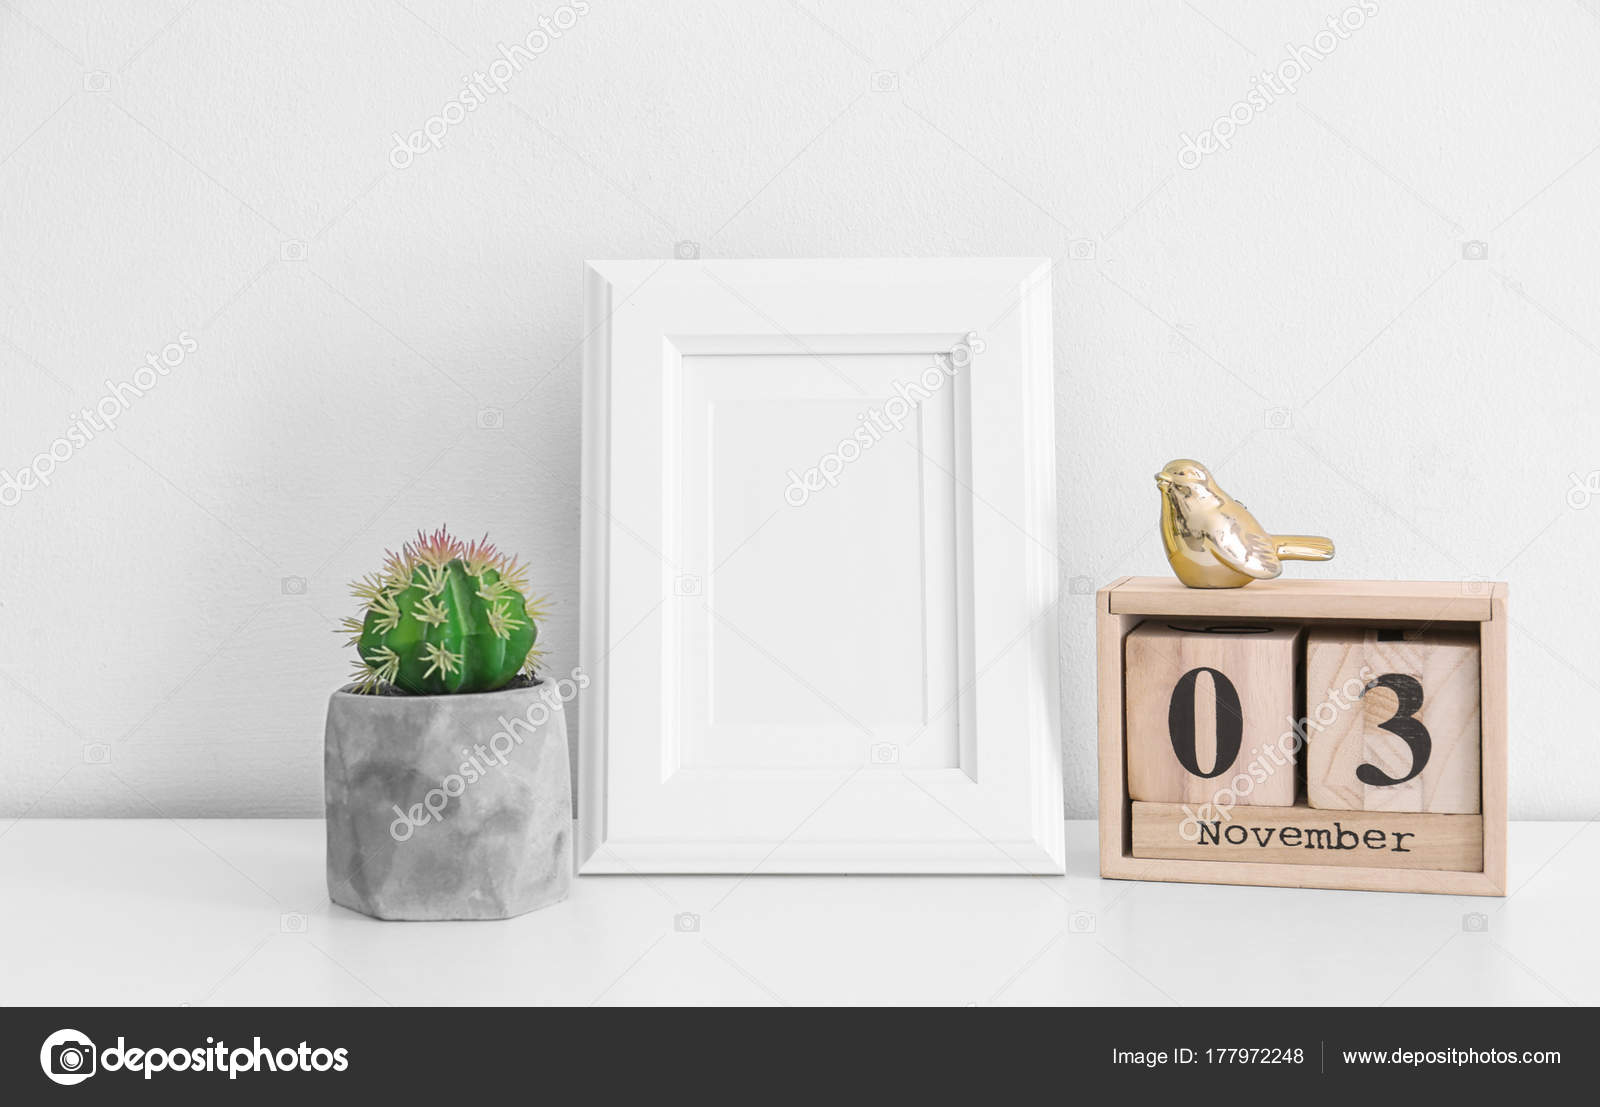 Empty Frame Wooden Calendar Cactus Table White Wall — Stock Photo ...